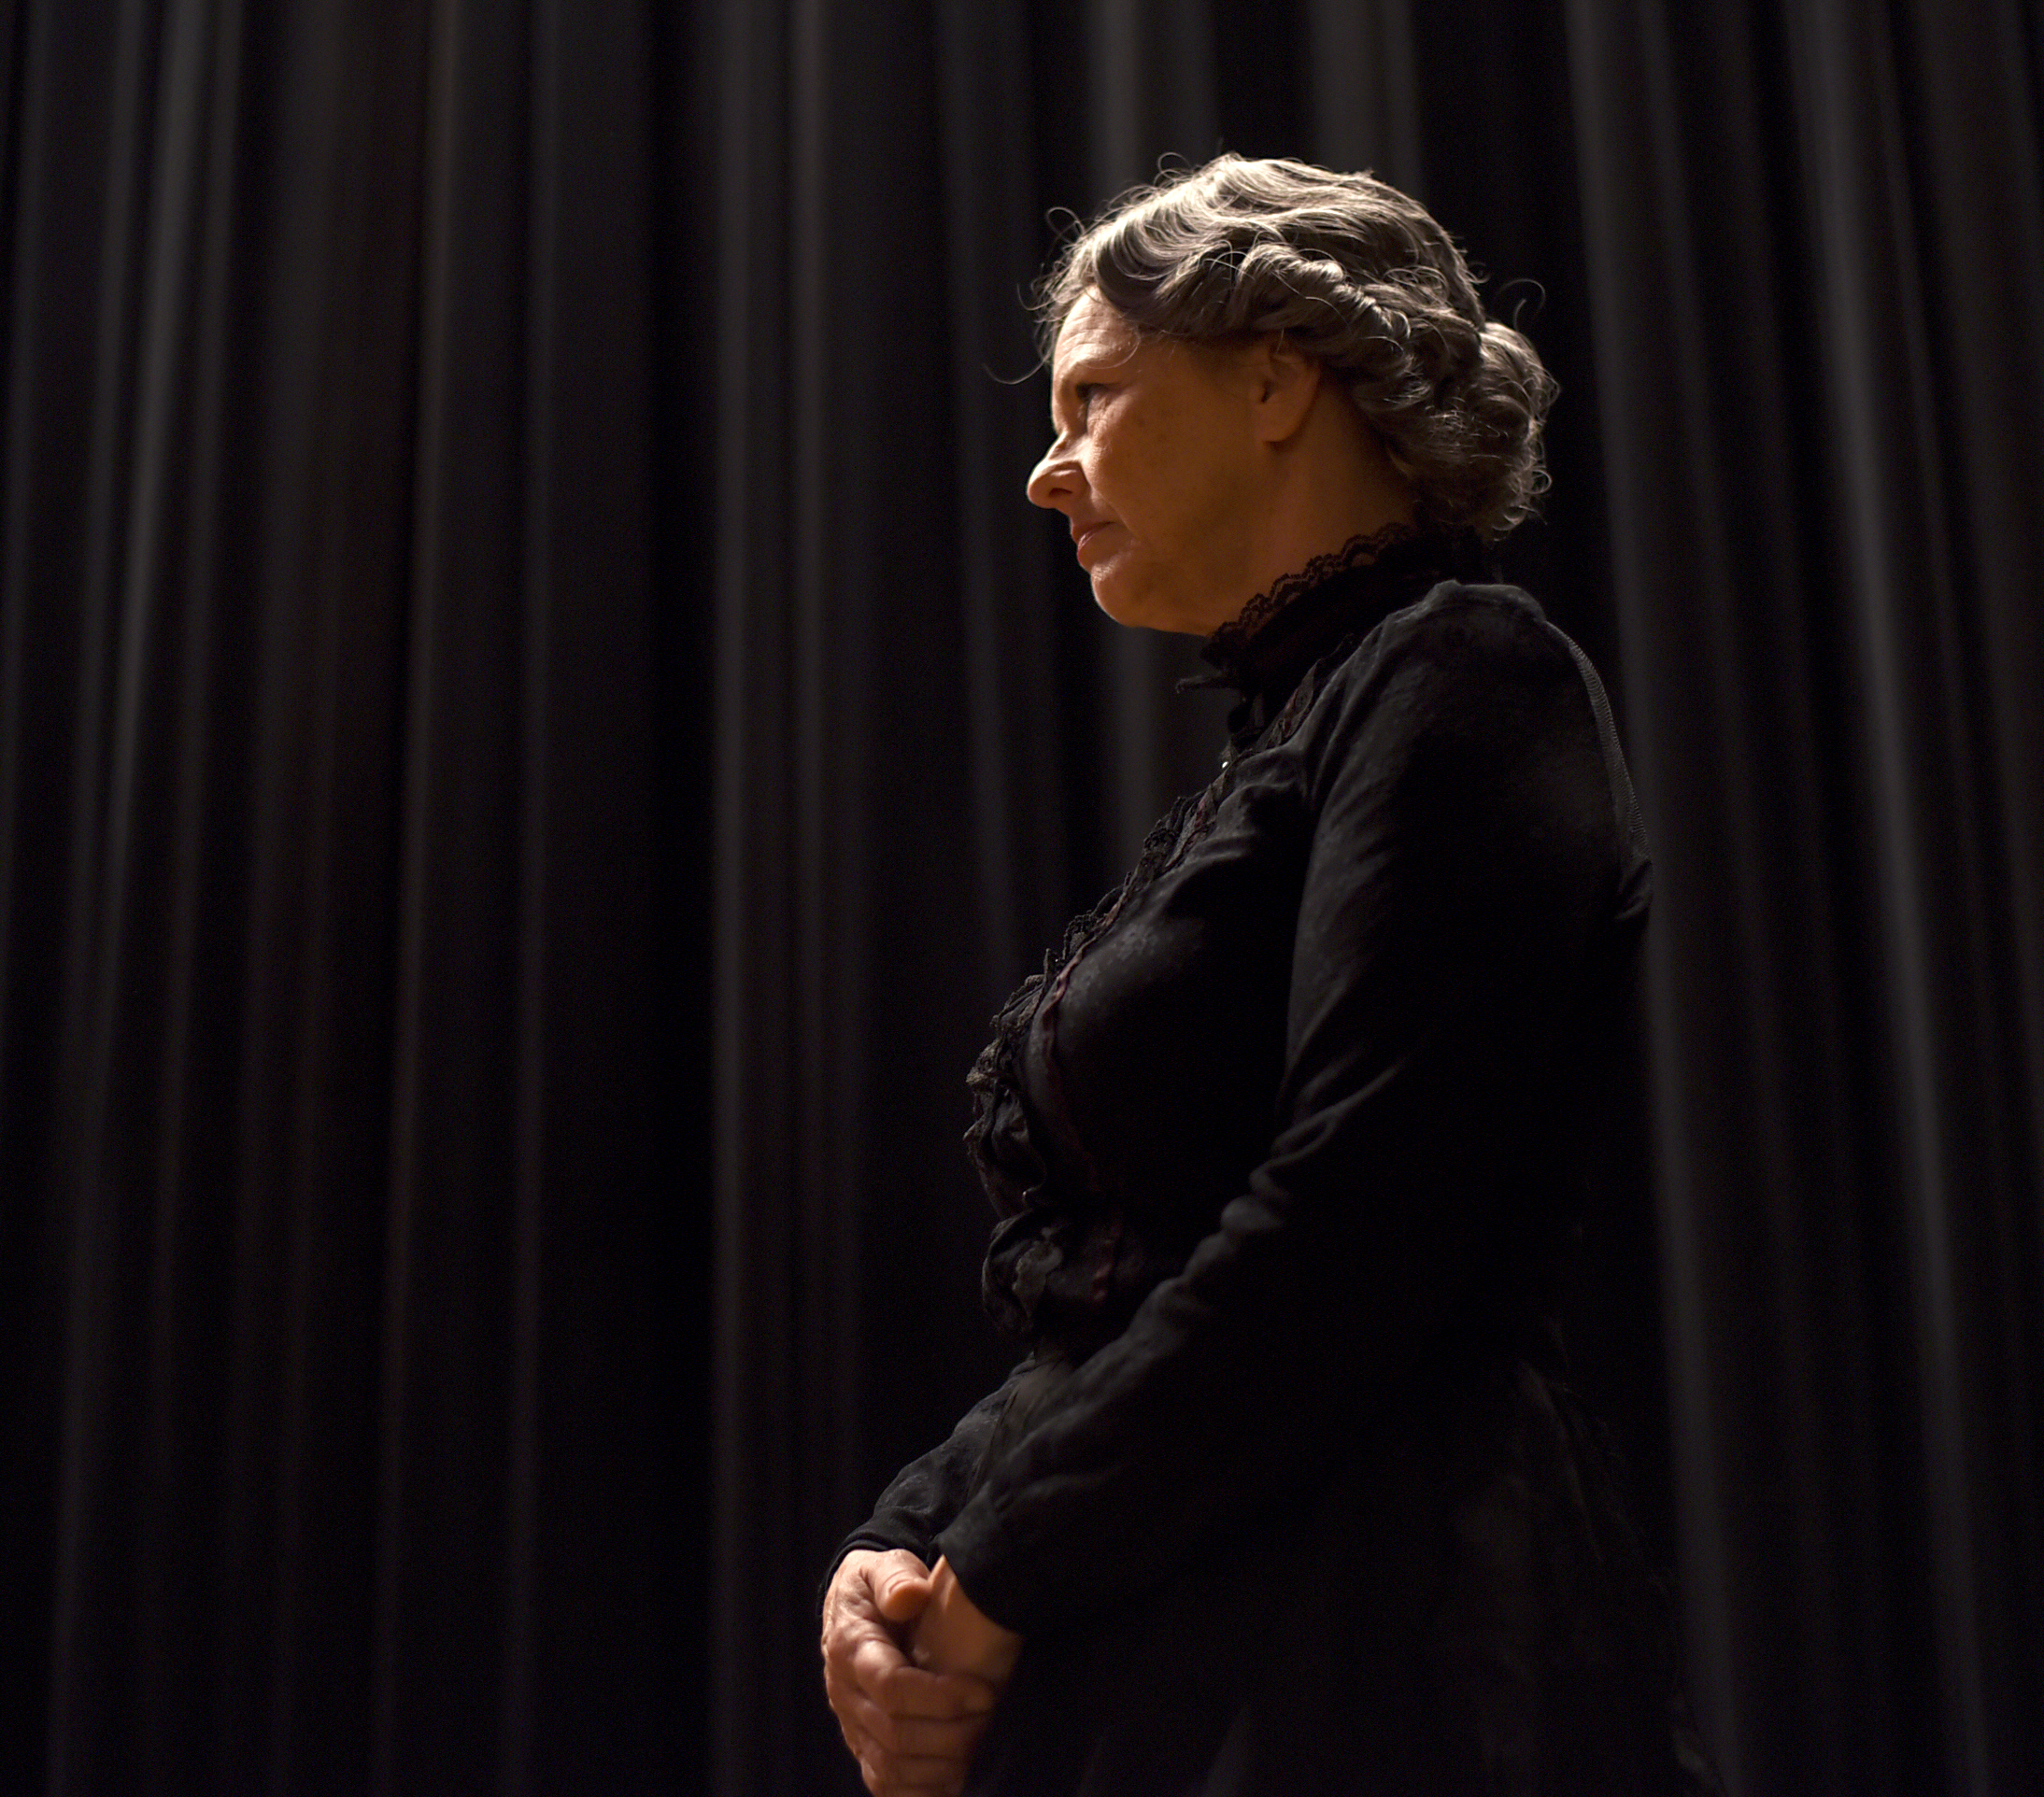 """Katie Doyle-Baumann dresses up as Susan B. Anthony during a dress rehearsal for the """"Within These Walls.."""" dinner show at Turner Hall on Nov. 11, 2015. """"She was a very stern person,"""" Doyle-Baumann said. """"It's very interesting playing her. I love the history of it."""""""